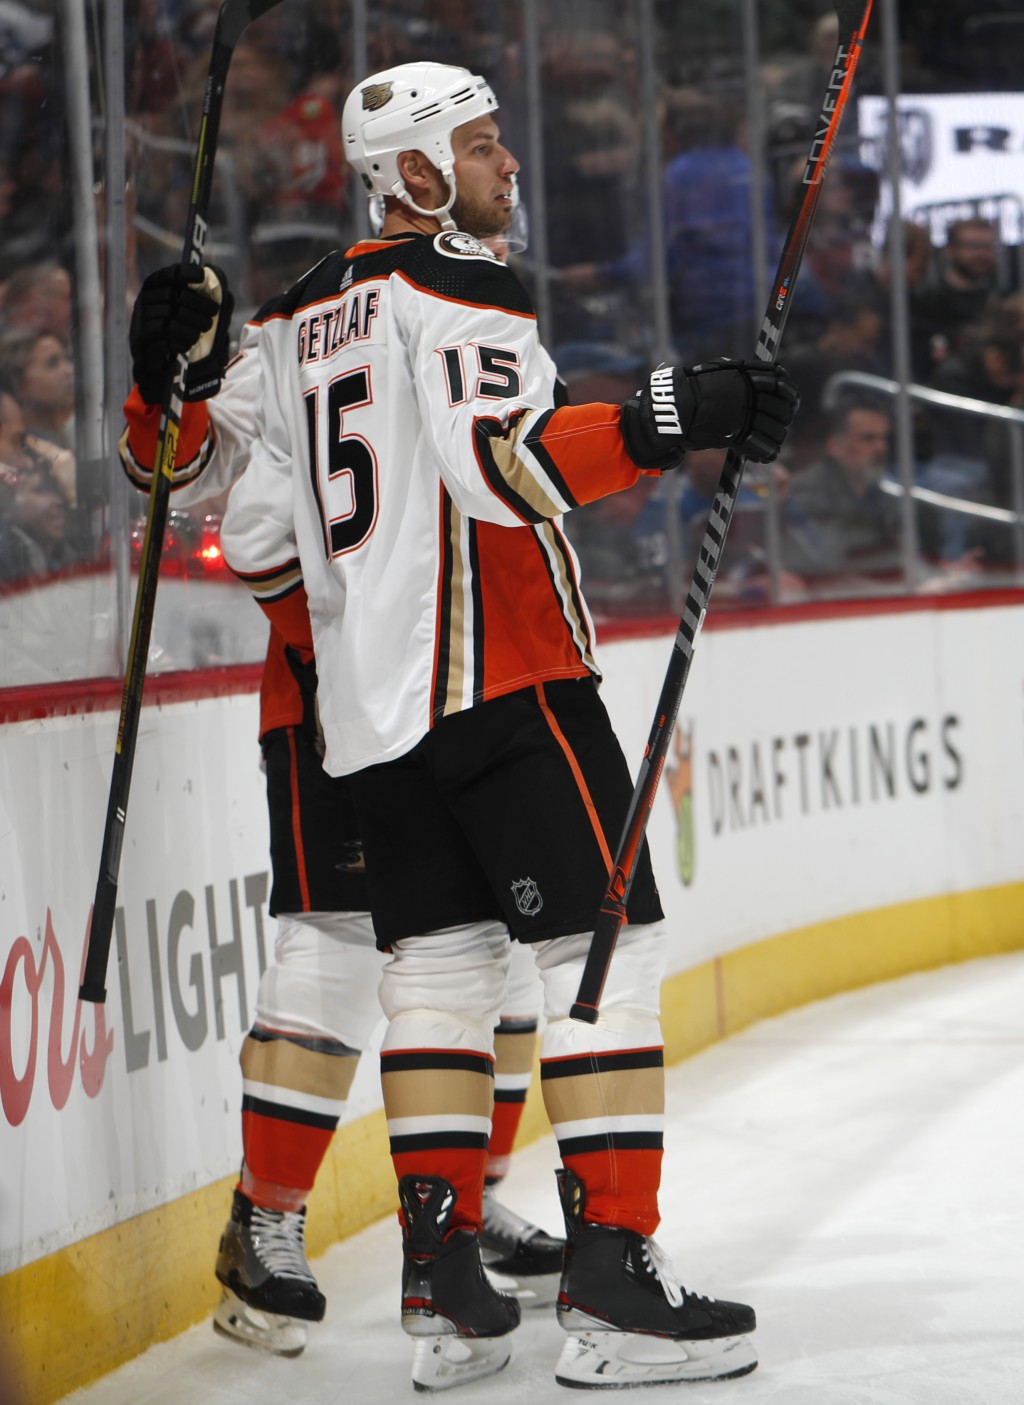 Anaheim Ducks center Ryan Getzlaf, front, celebrates his goal with defenseman Cam Fowler during the second period of an NHL hockey game against the Co